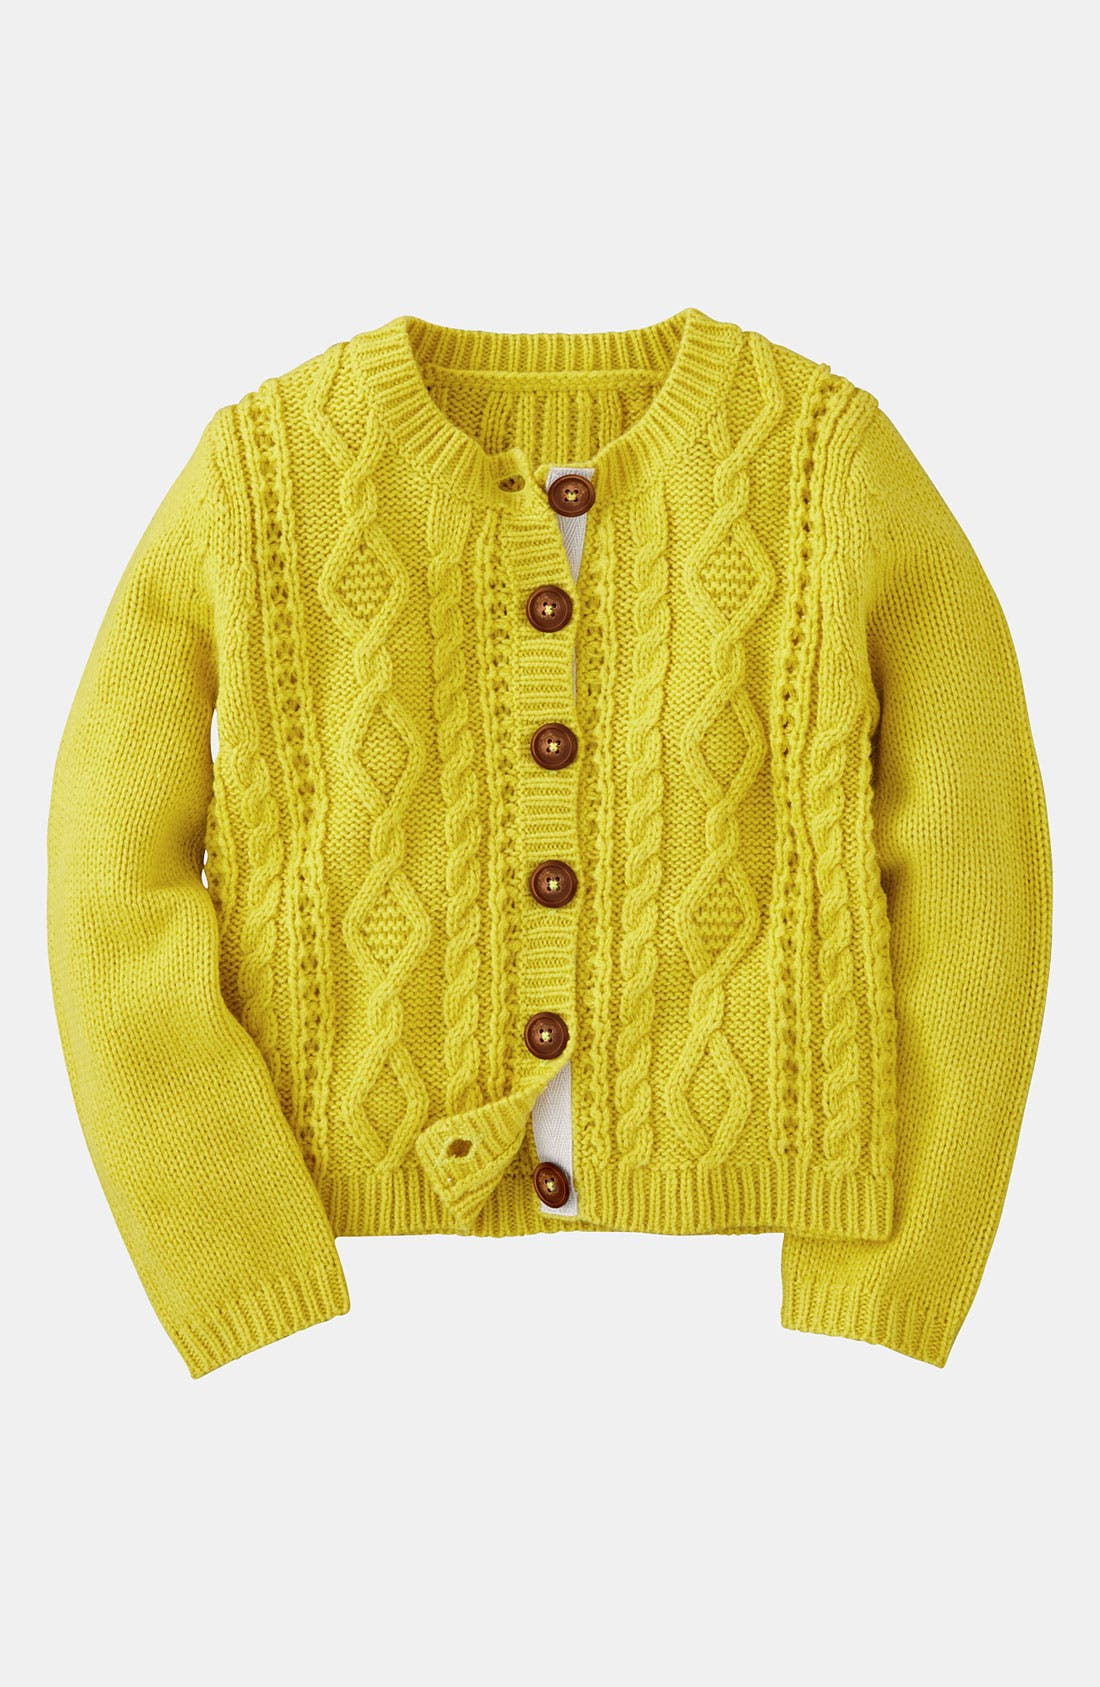 Alternate Image 1 Selected - Mini Boden 'Cozy' Cable Cardigan (Little Girls & Big Girls)